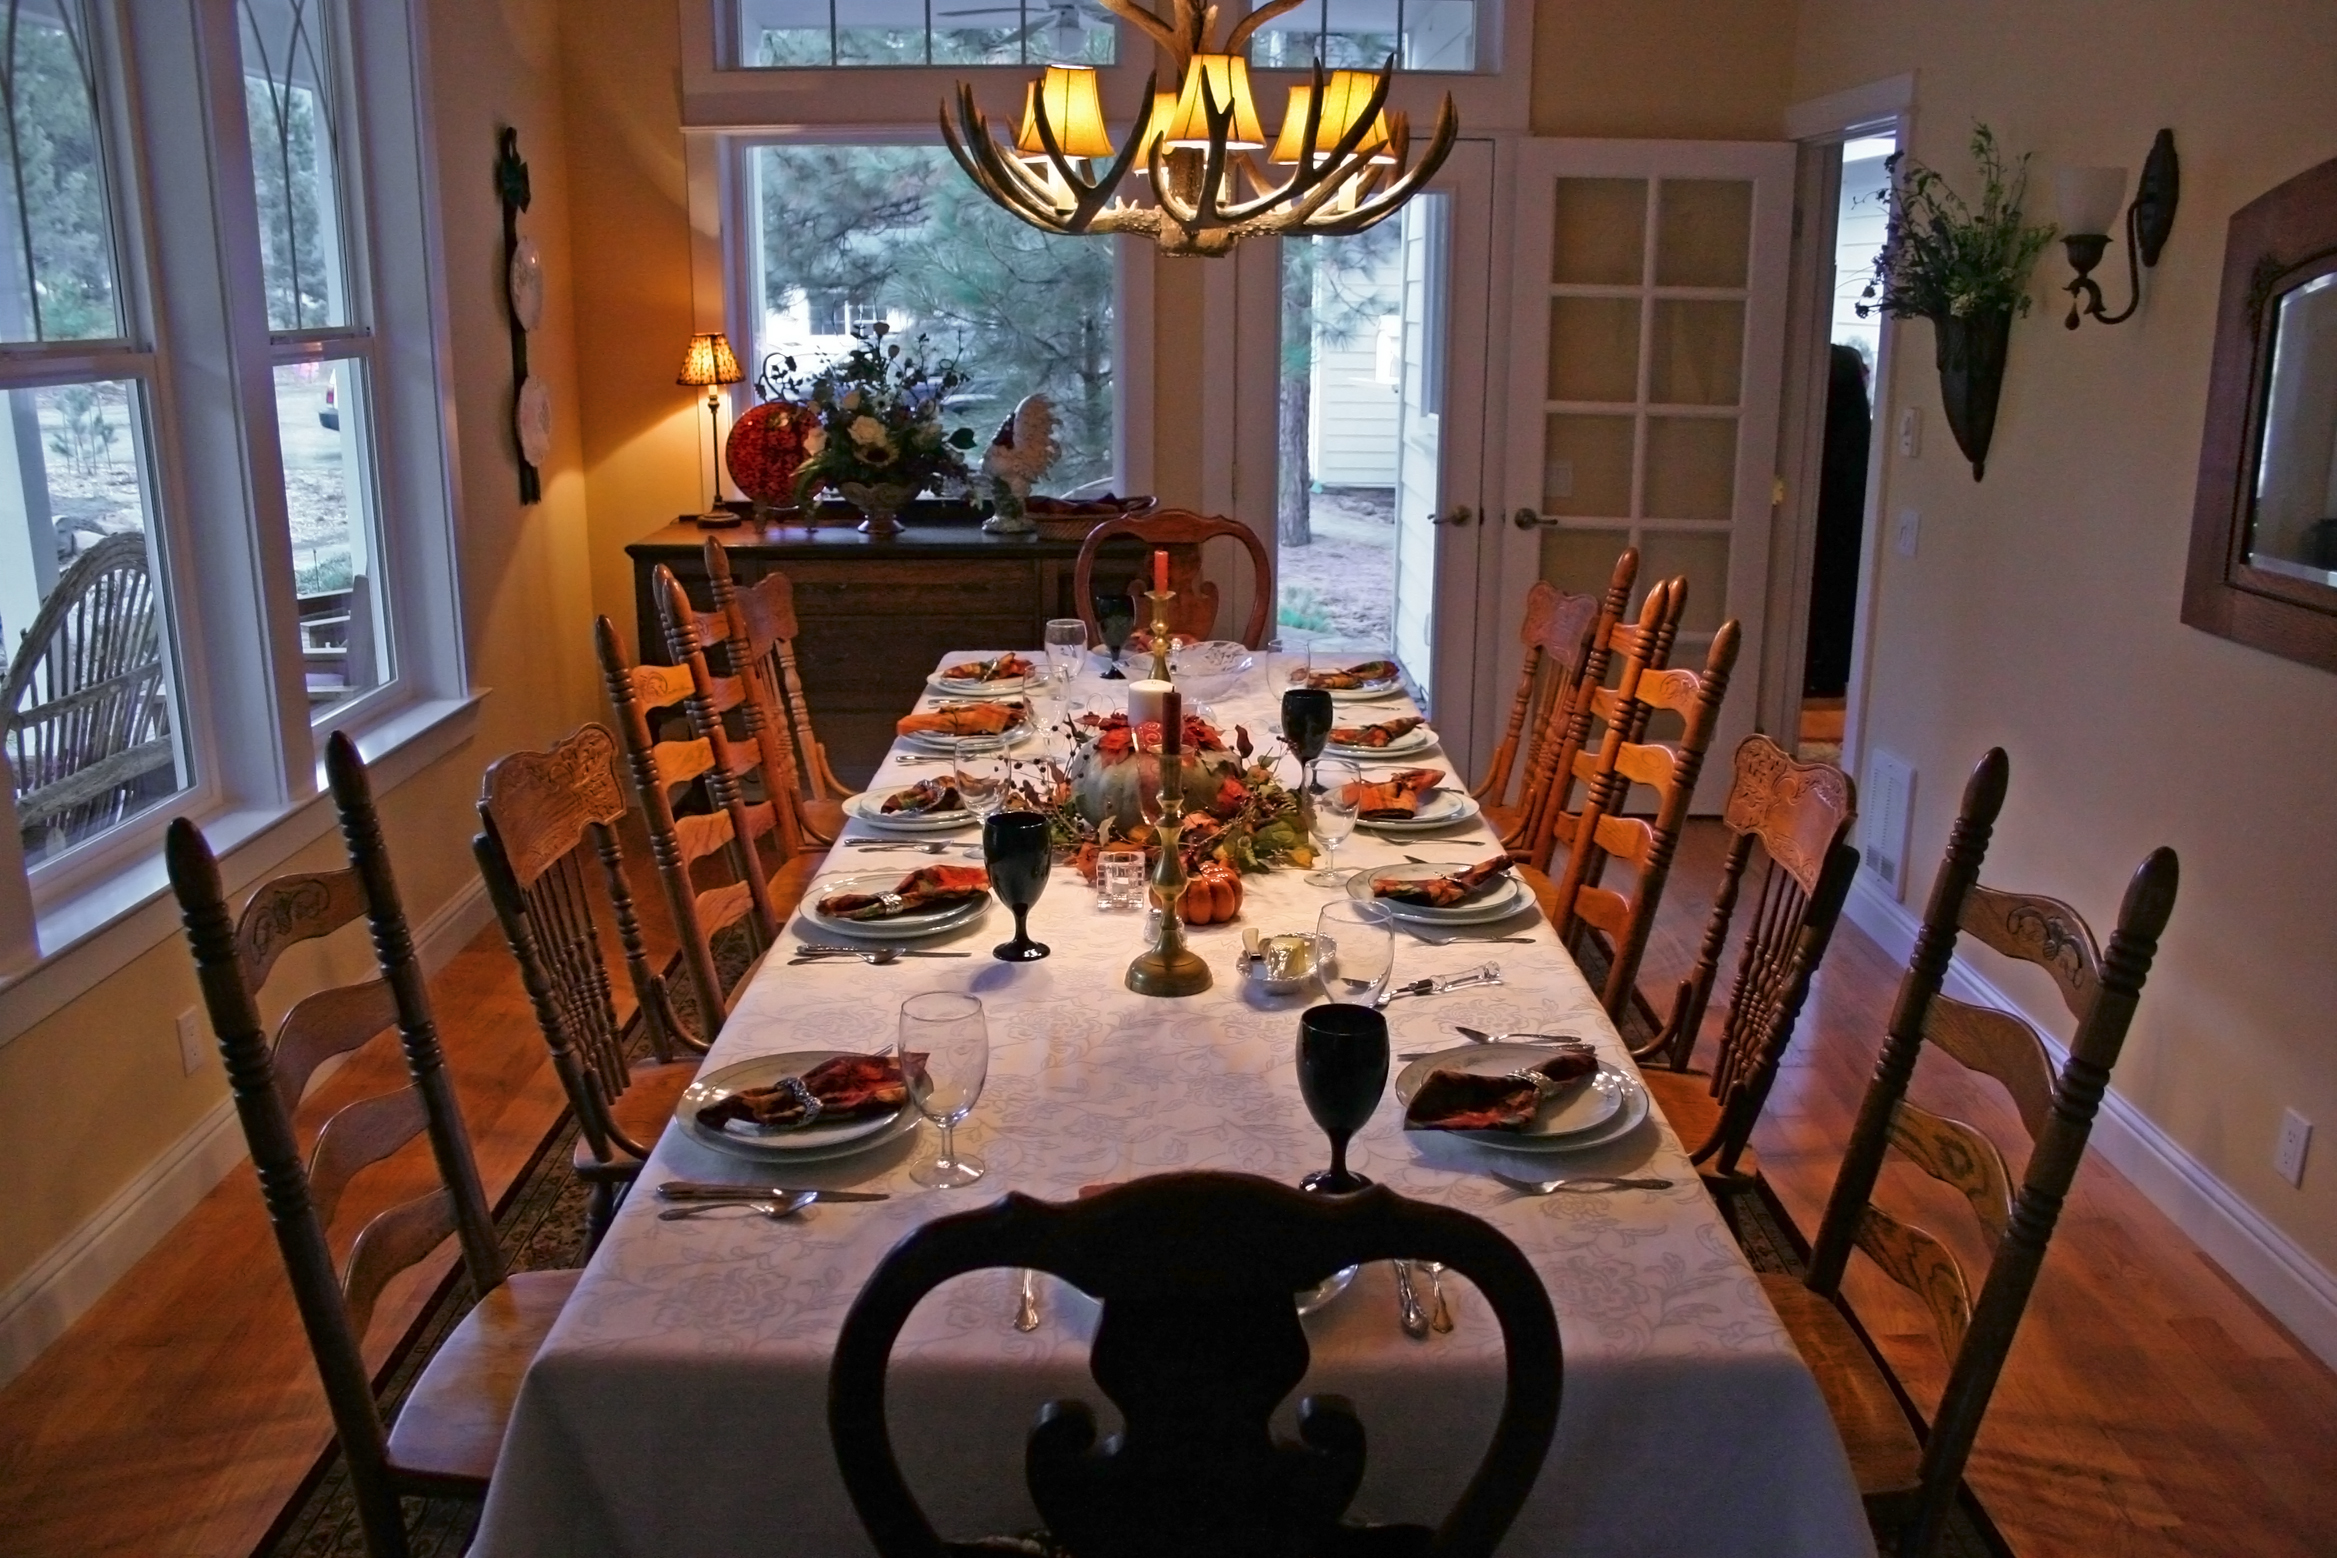 Which guests would you invite to sit around your table if you were holding your fantasy dinner party?